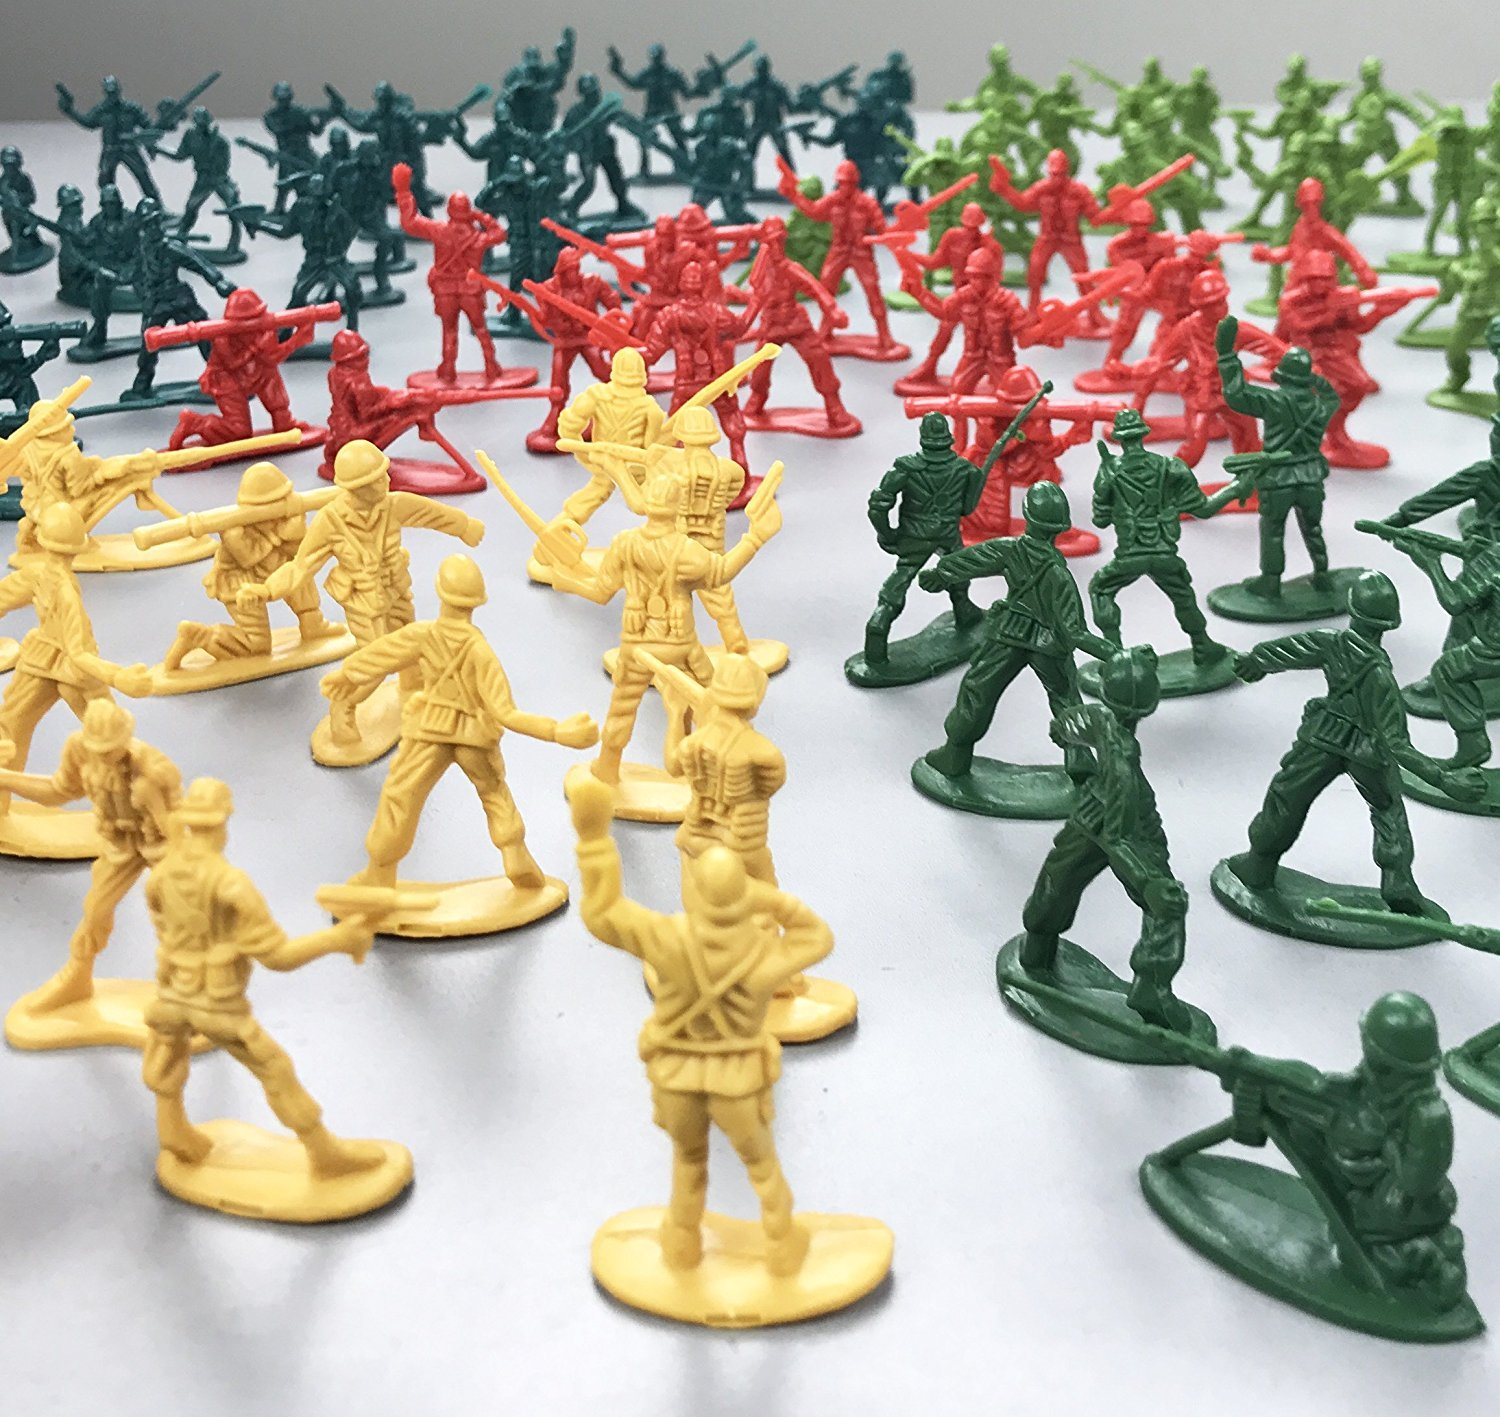 Bulk Kids Toy Party Favors Supplies Liberty Imports 12 Tubes of Action Figures Army Men Soldiers in Mini Buckets